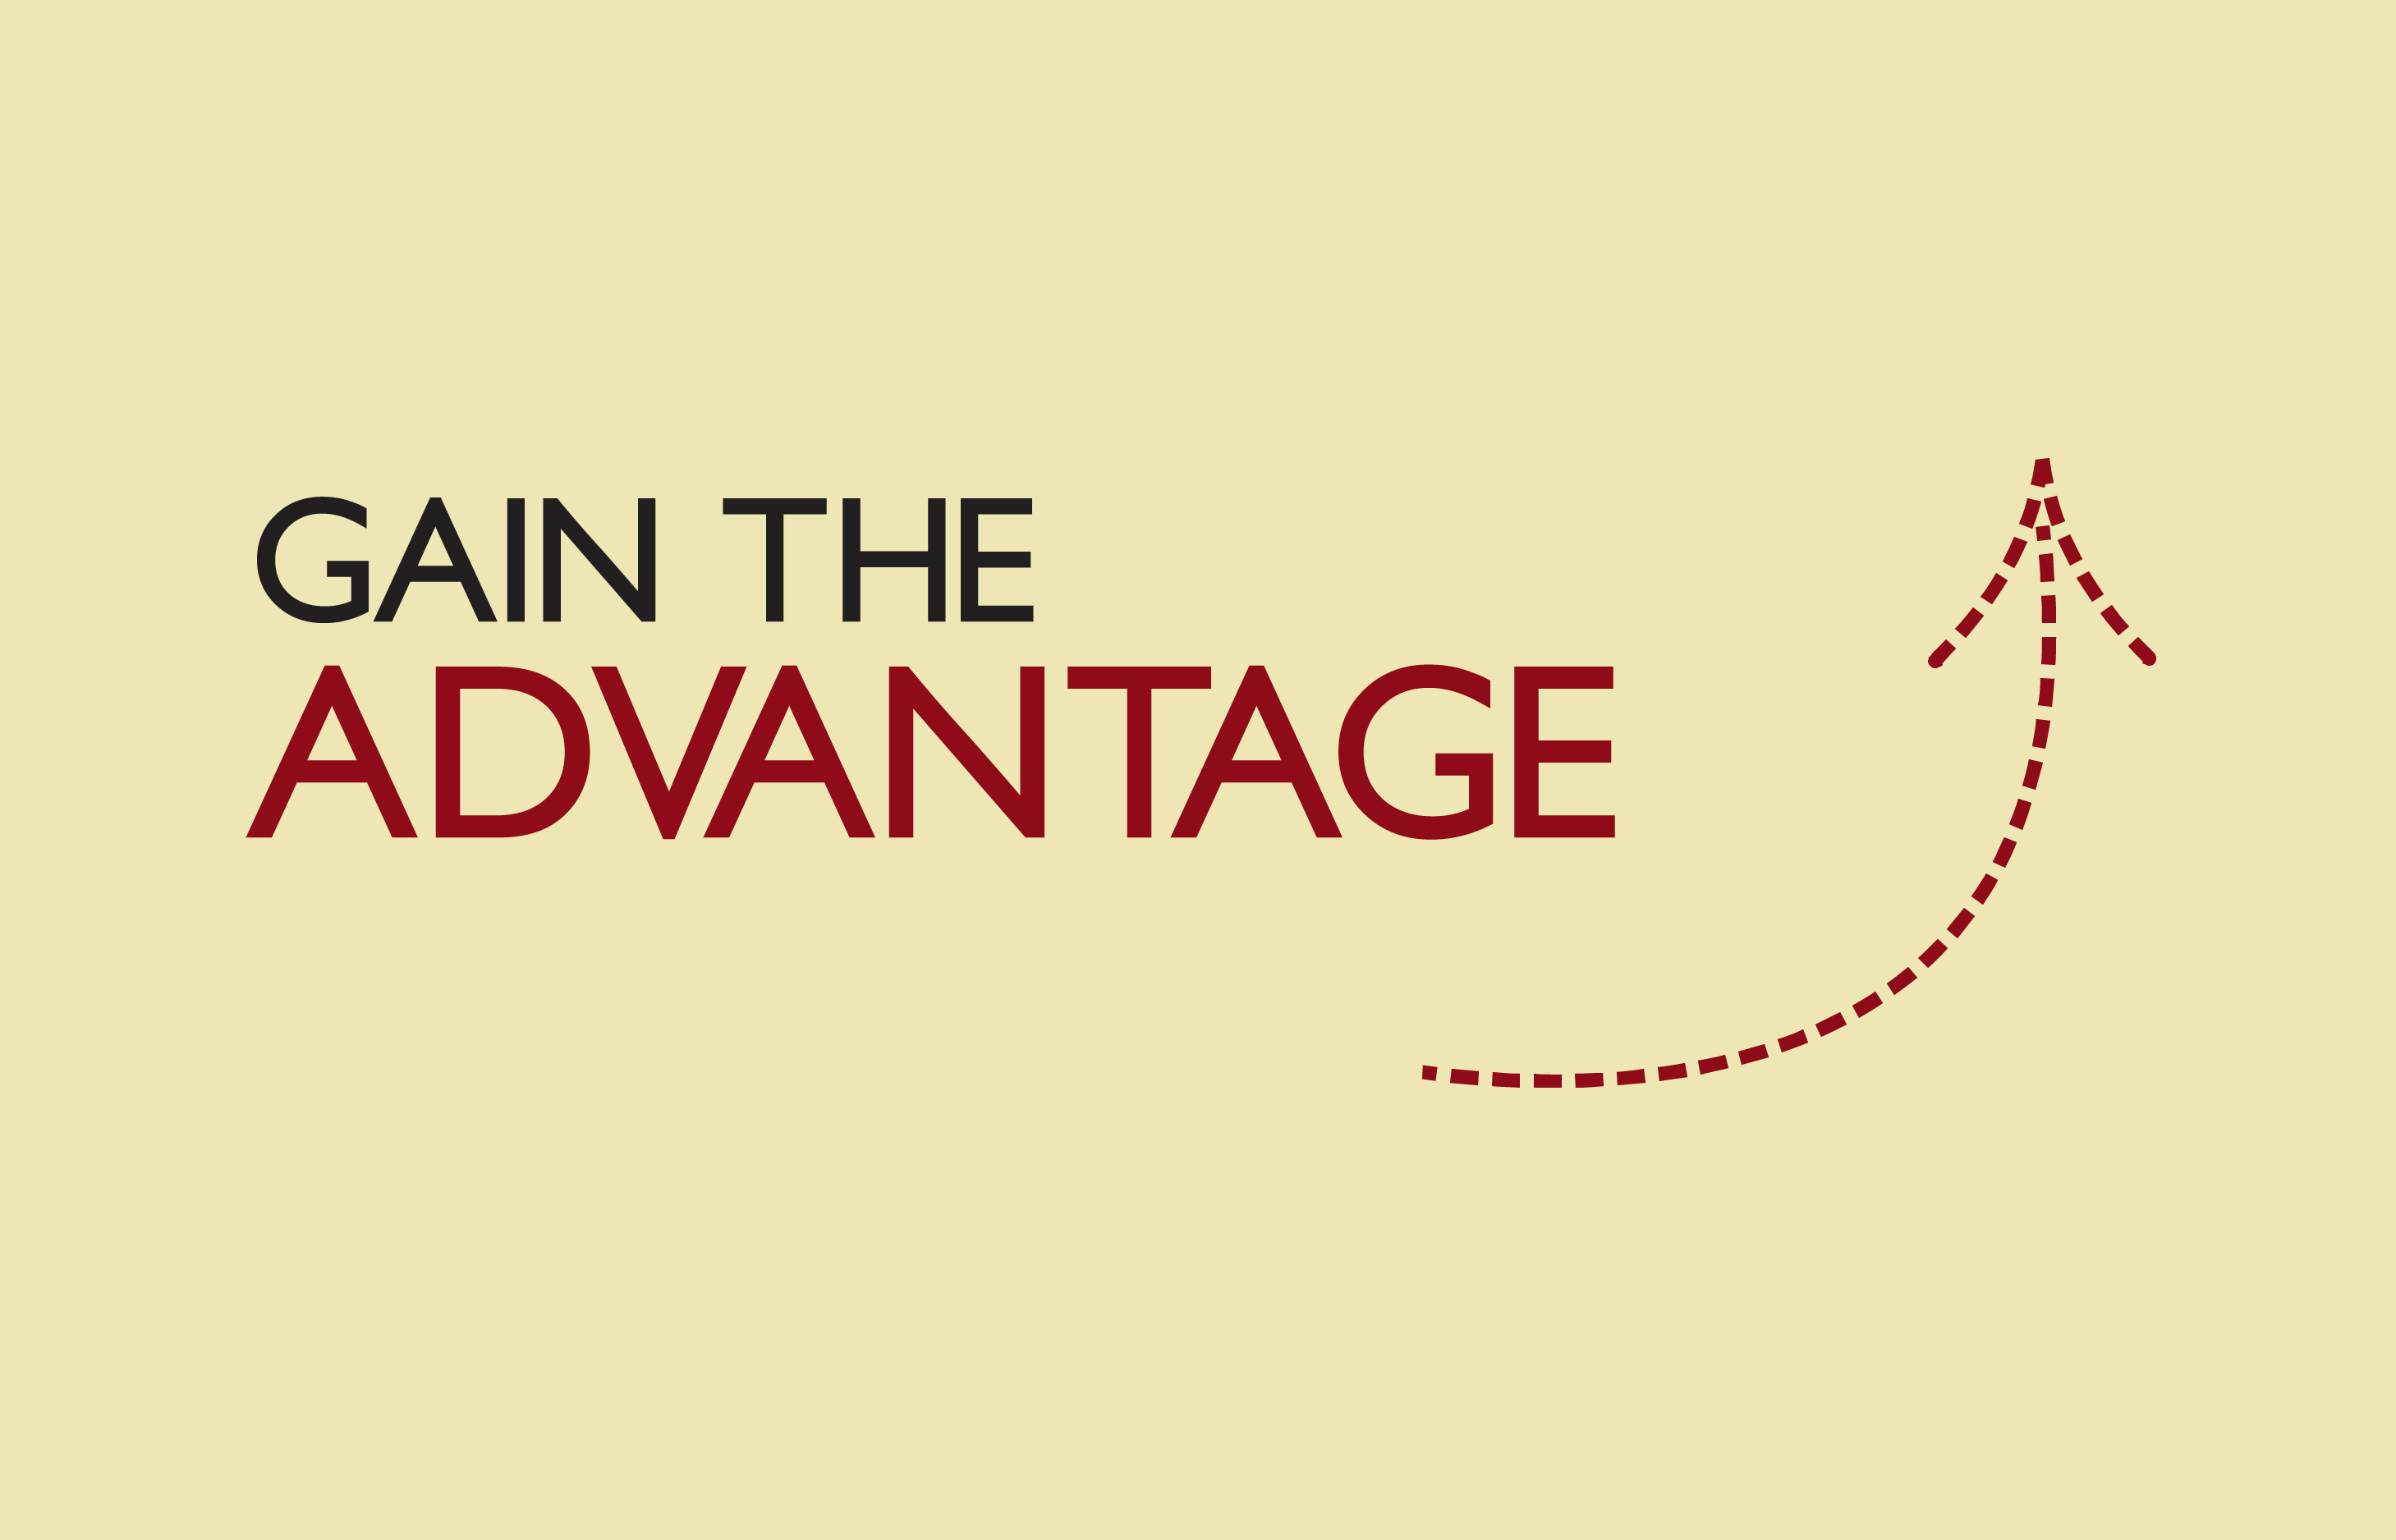 advantage in marketing with digital tools